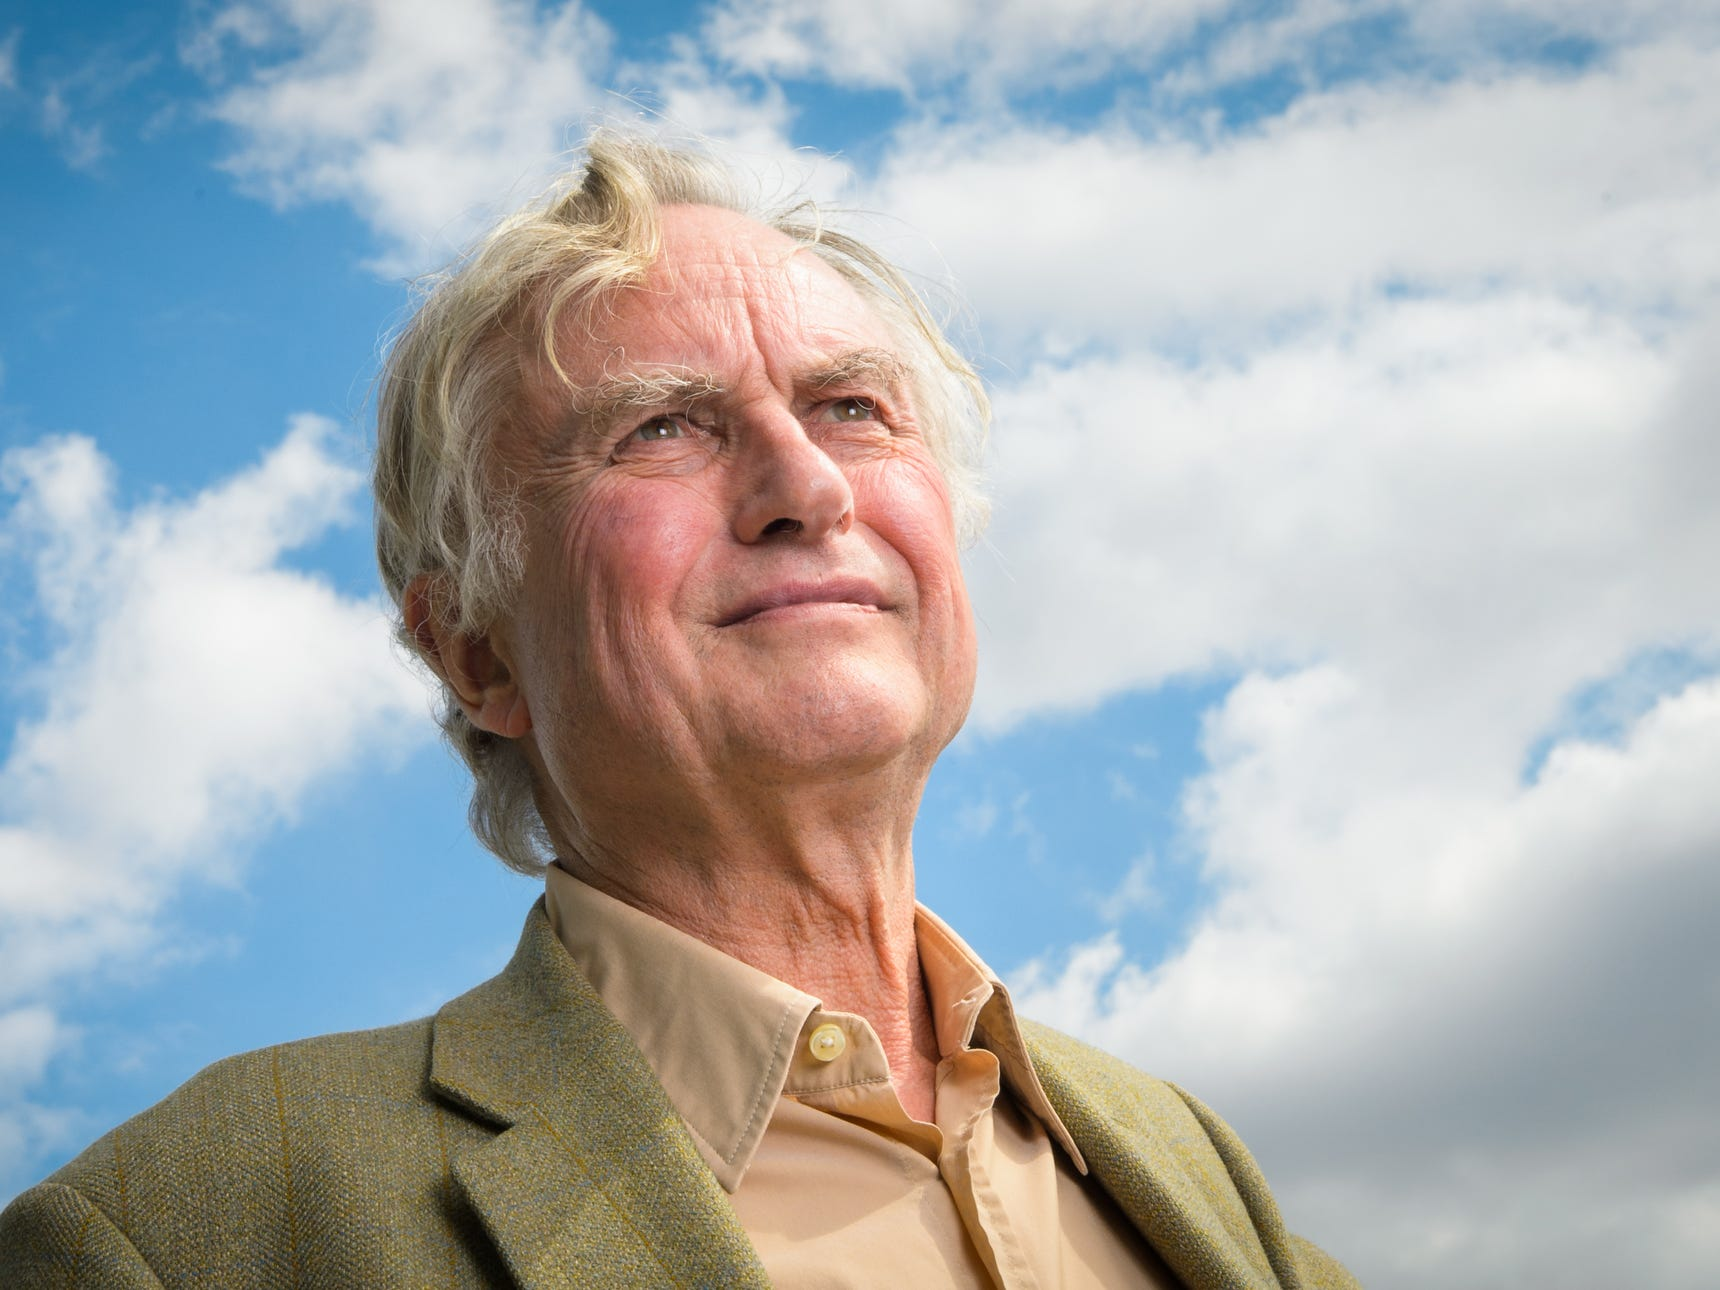 OCT. 30